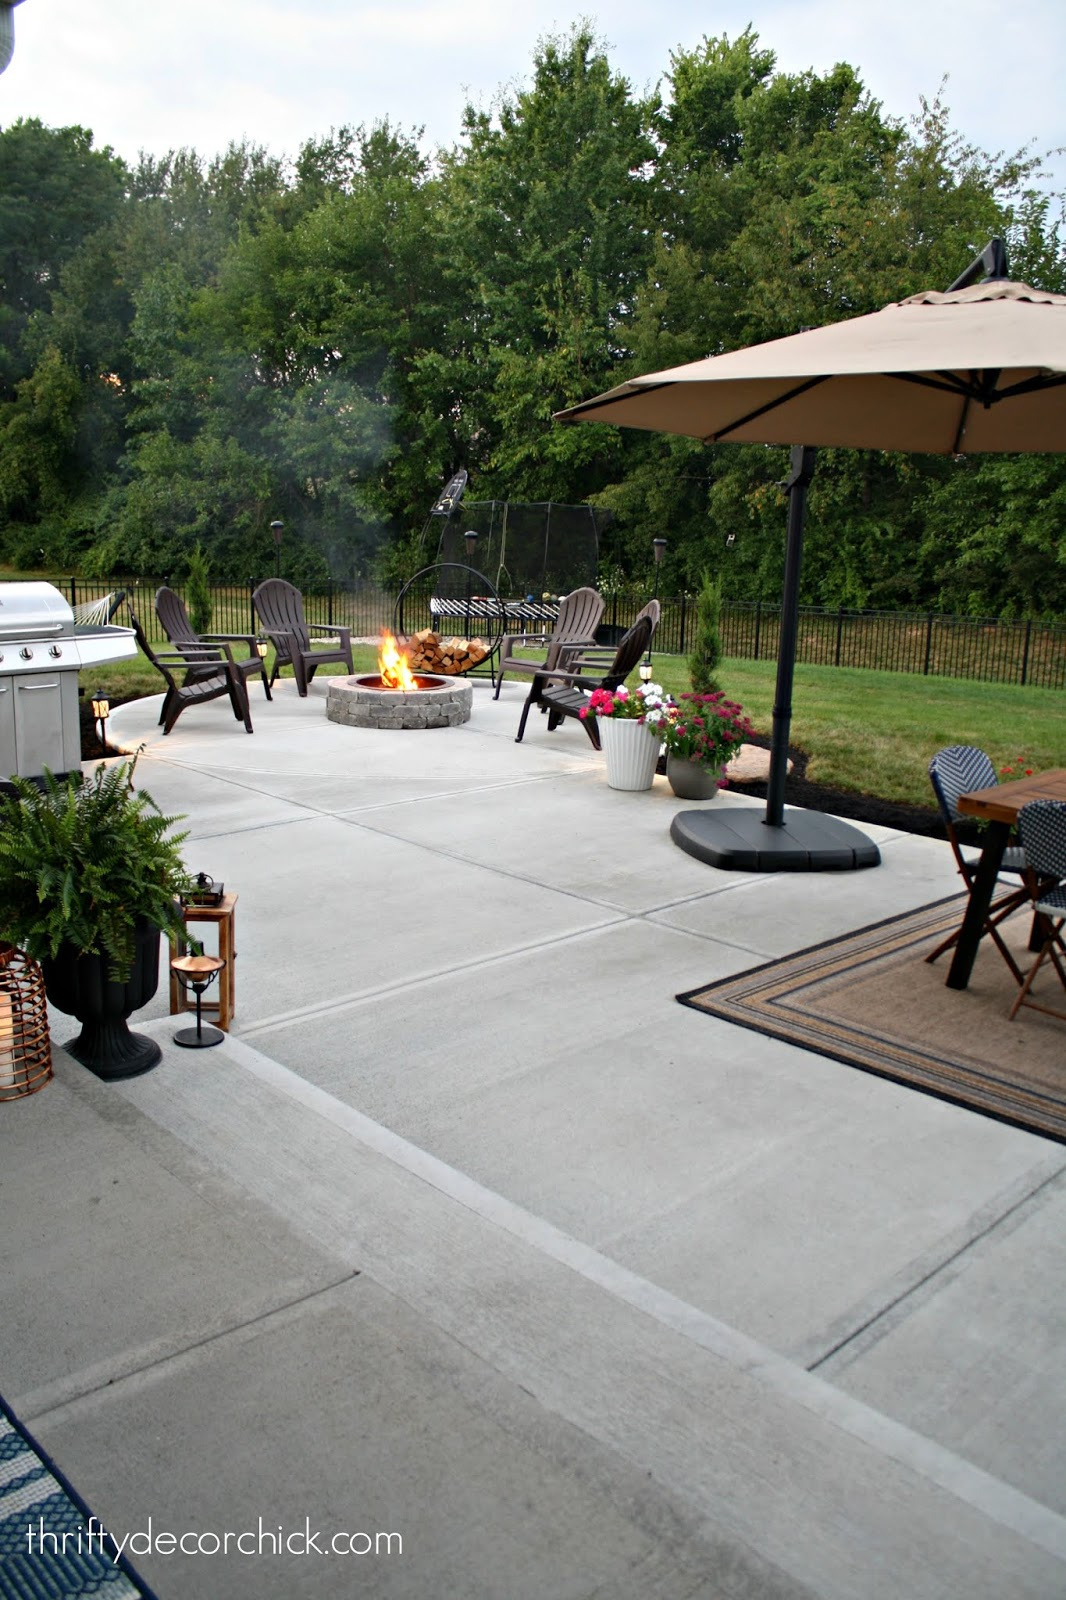 Concrete instead of stamped concrete or deck